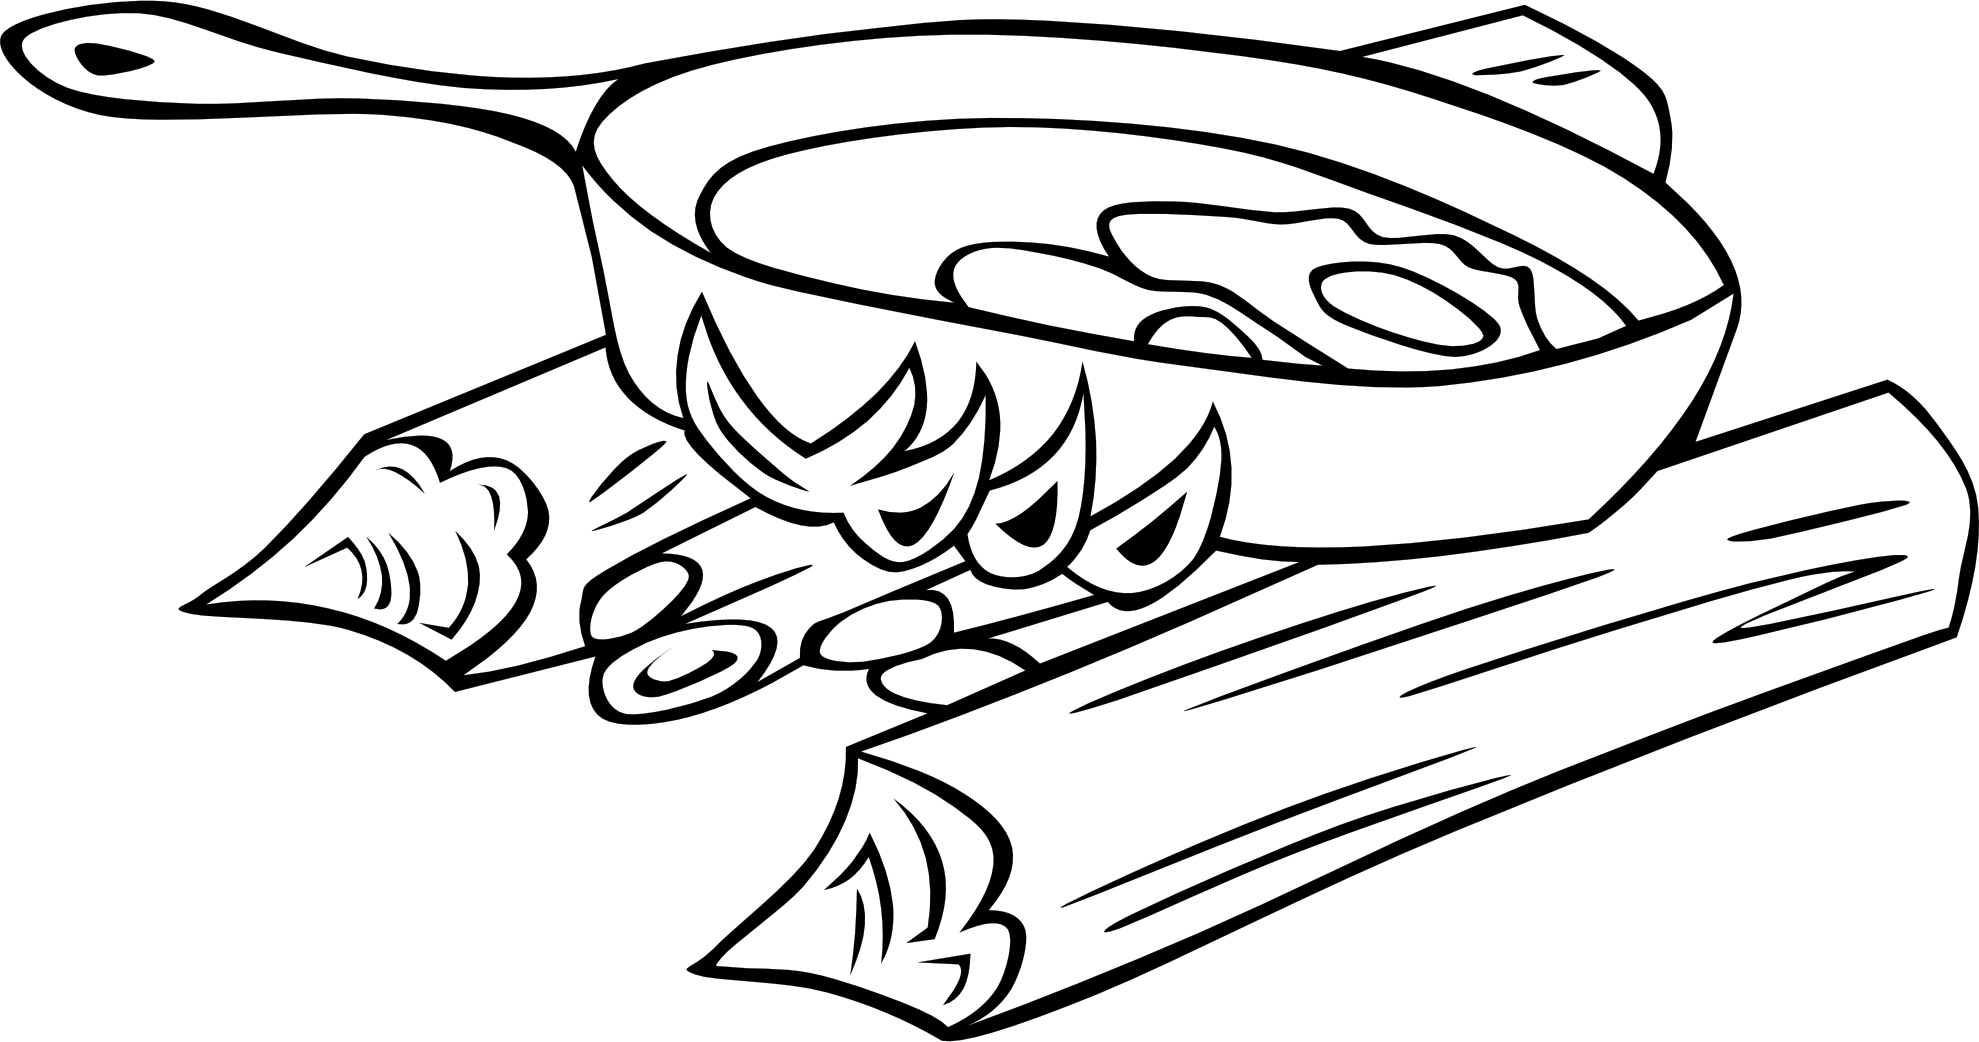 Heat black and white clipart banner library Heat clipart black and white - Clip Art Library banner library